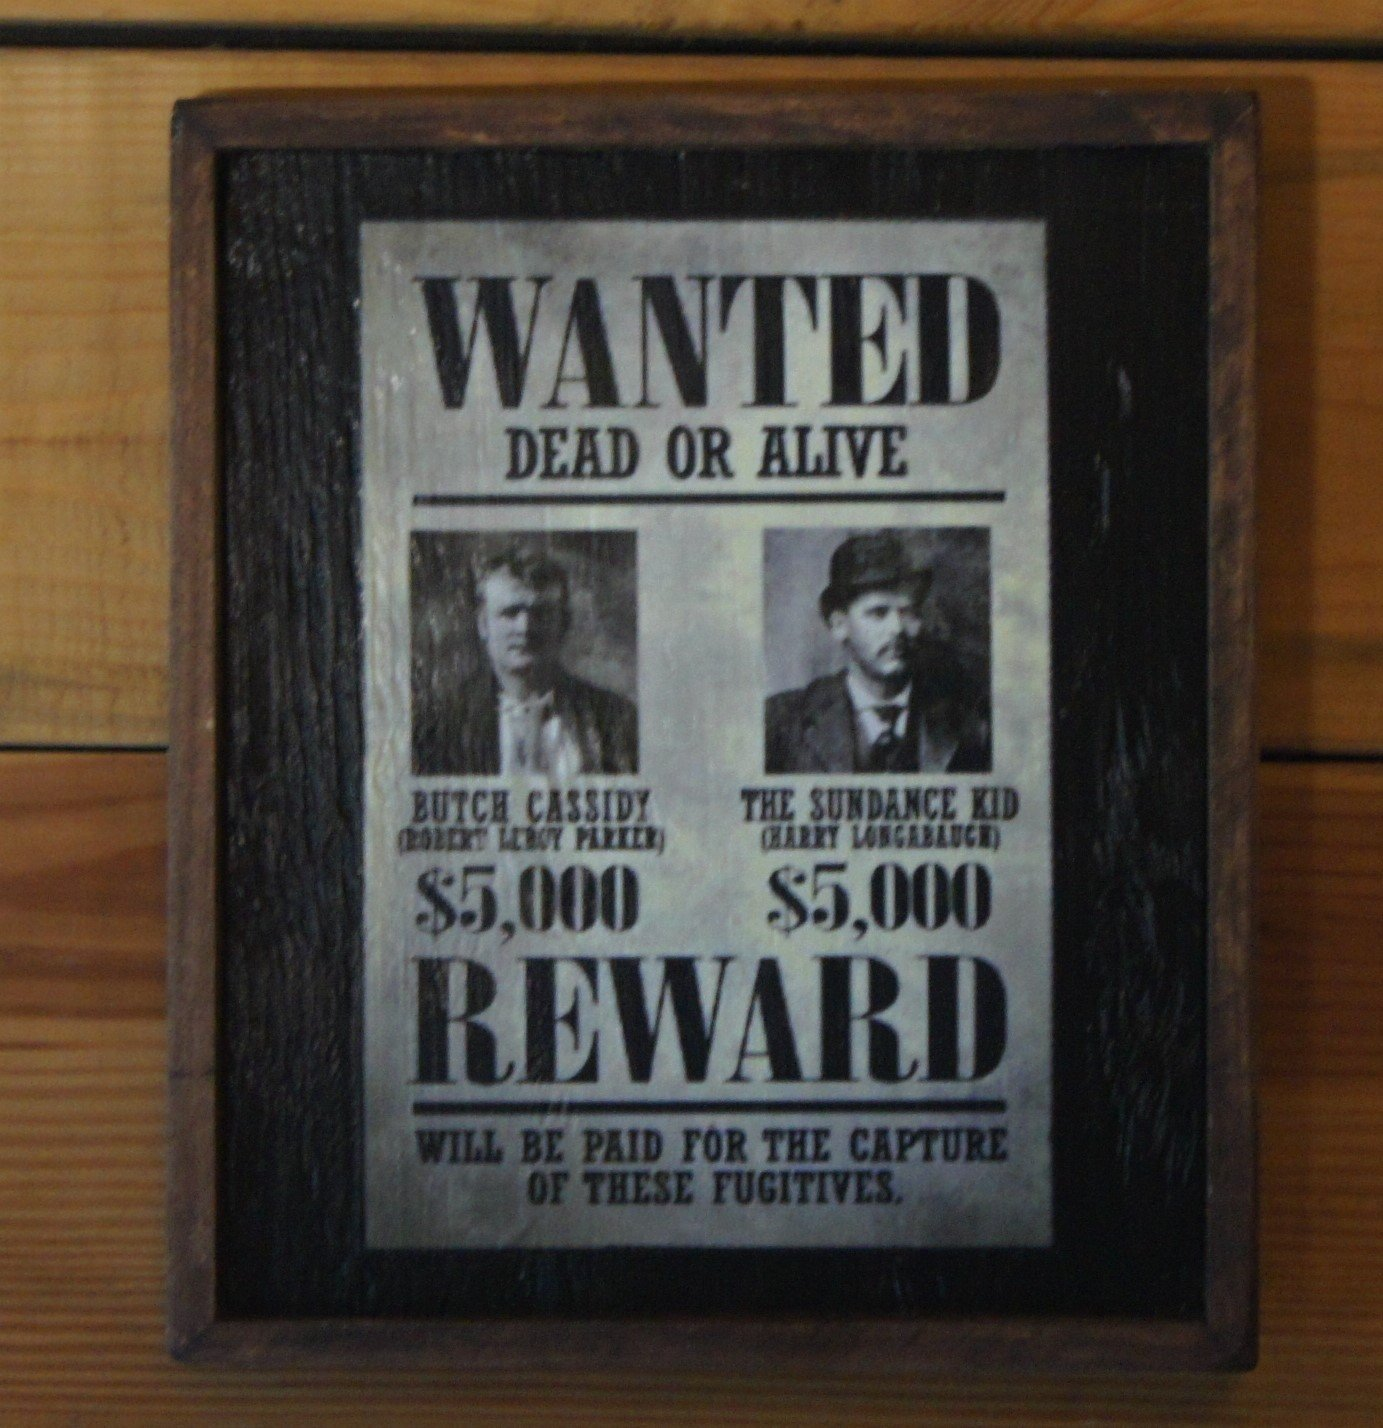 Vintage Butch Cassidy and the Sundance Kid Wanted Poster in a framed sign by Wooden Crow Company